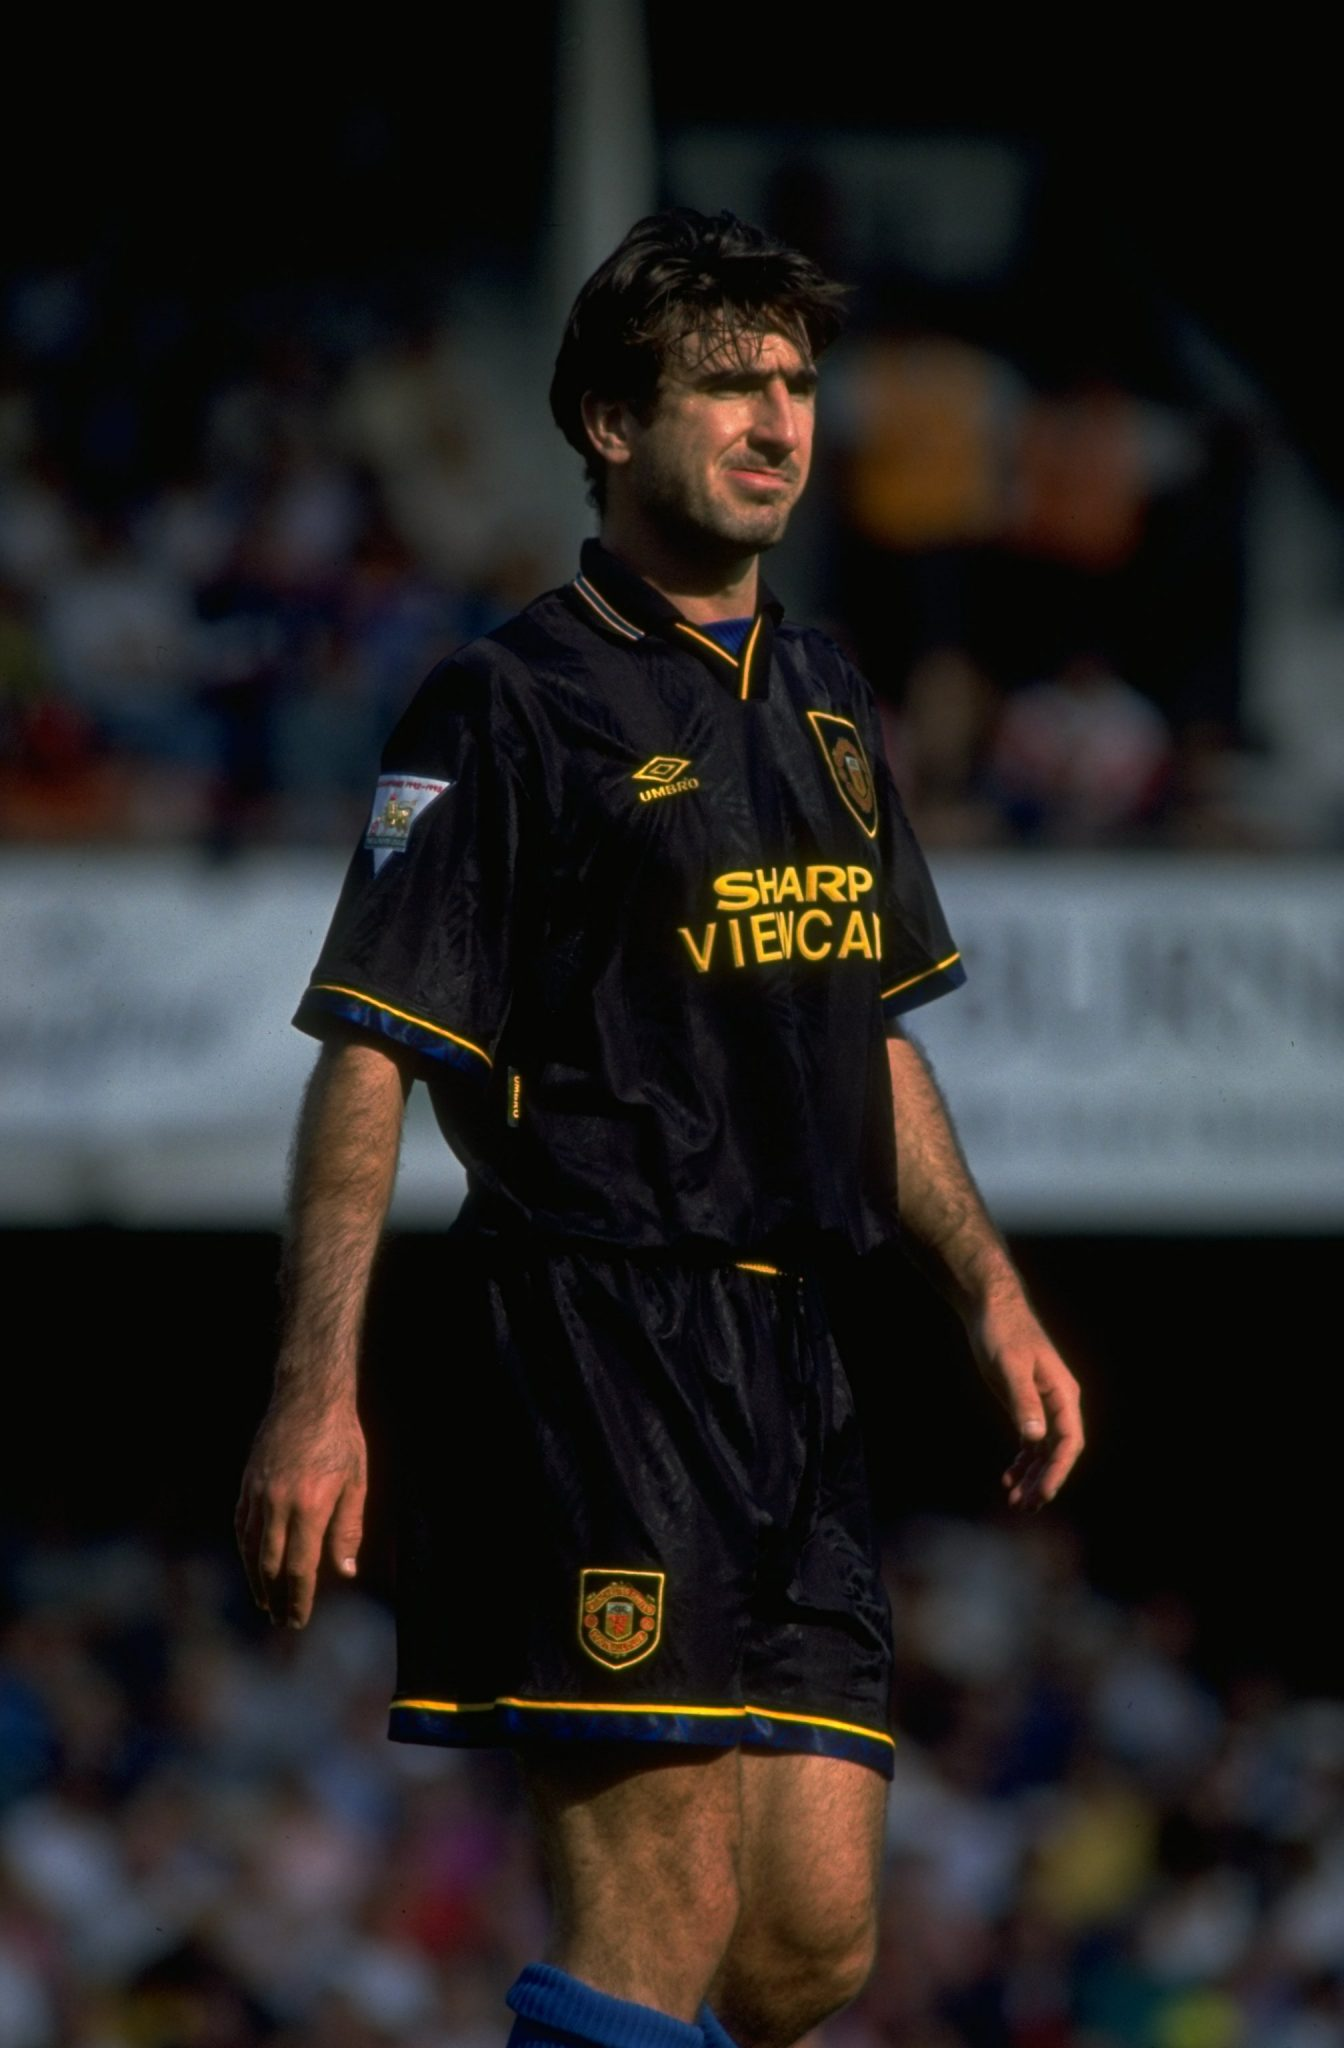 22.1.2015· cantona, meanwhile, is silently digesting the impact of his actions. The SportsJOE 12 o'clock quiz | Day 274 | SportsJOE.ie